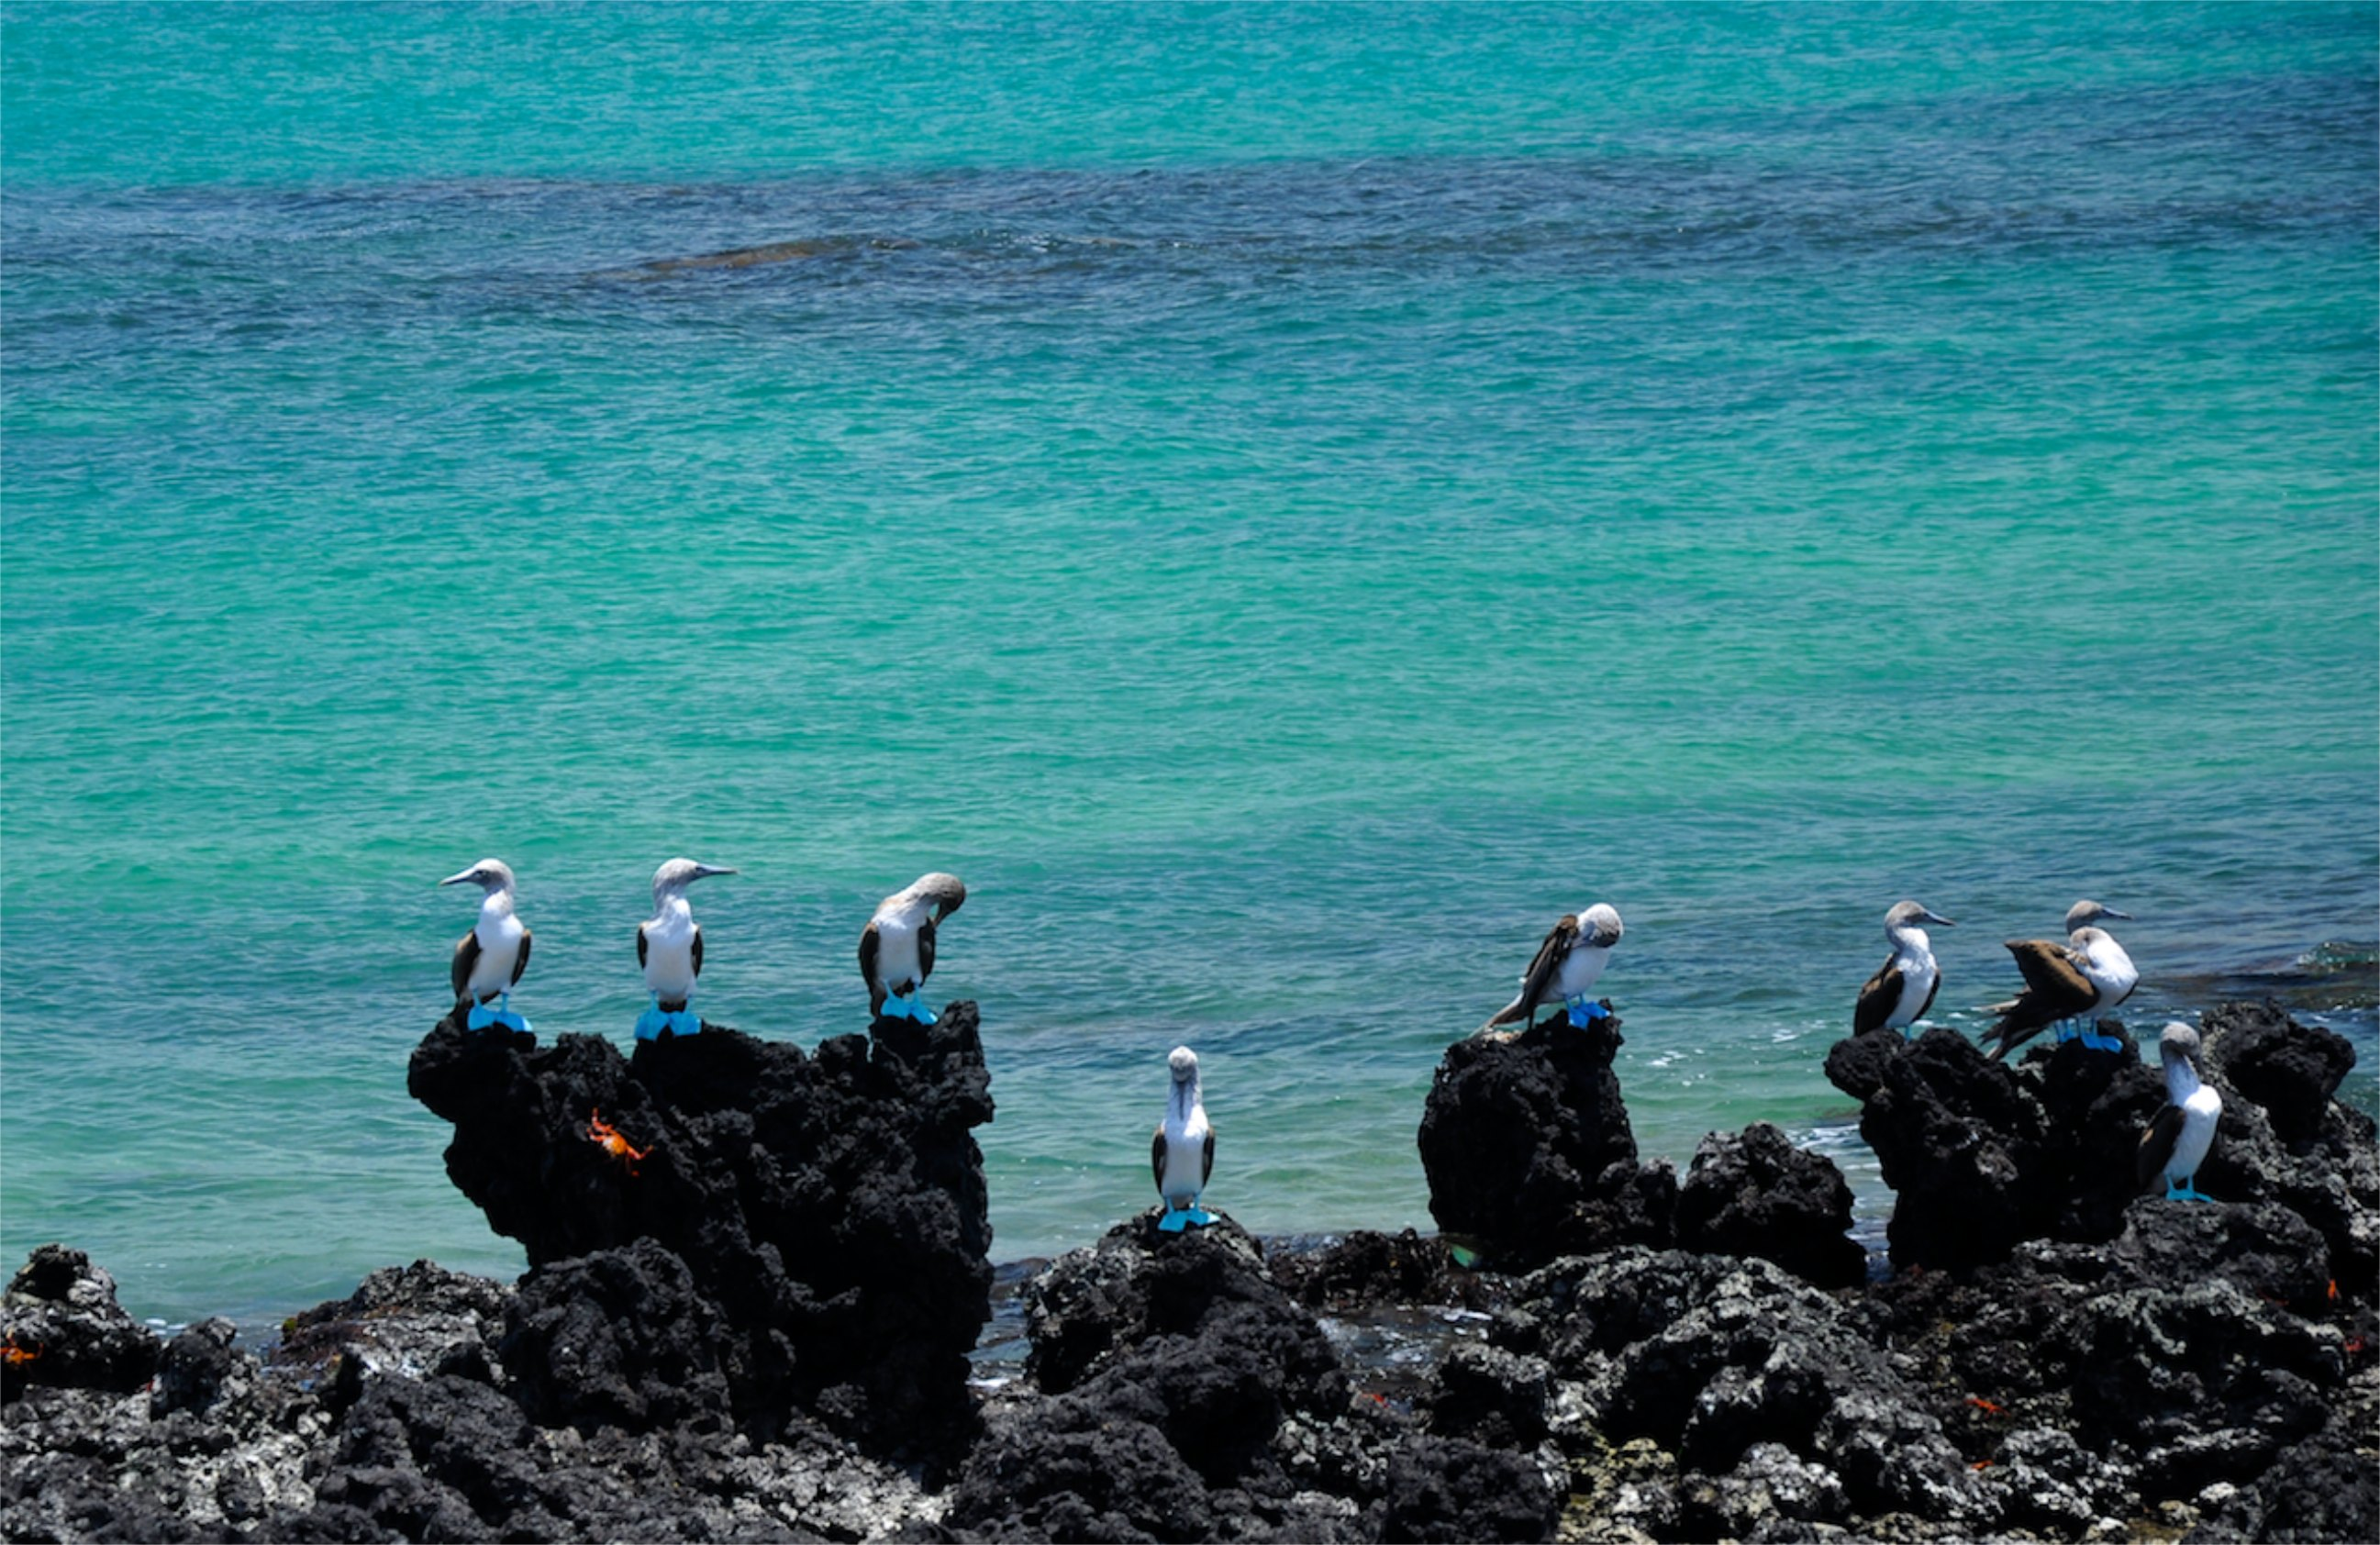 An 8 day mission to the Galapagos